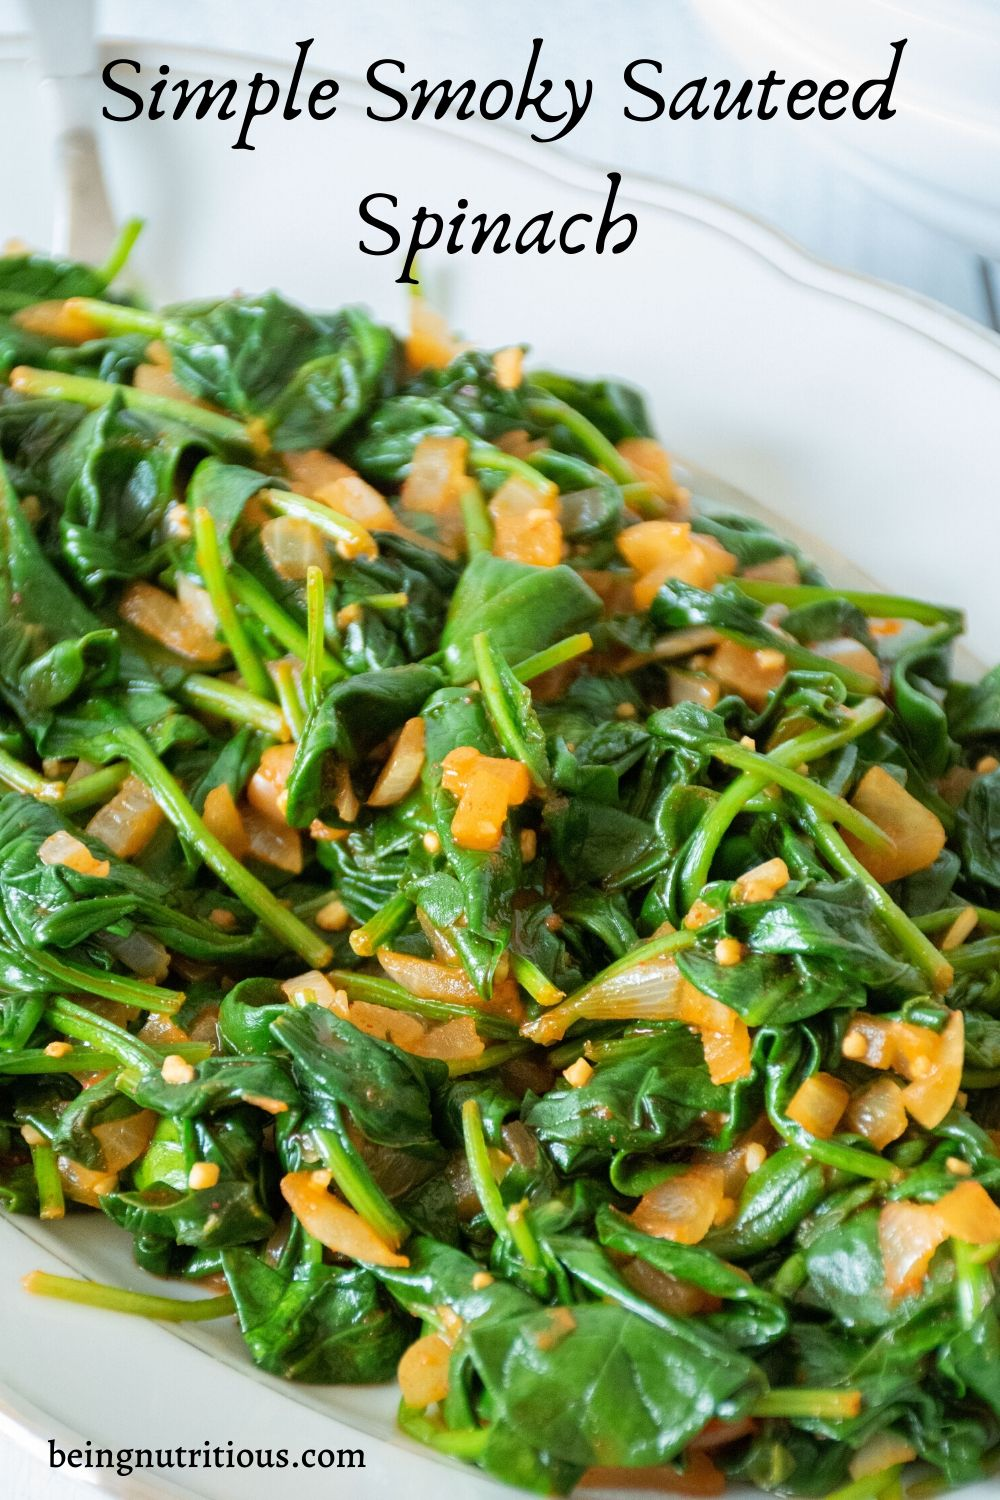 Smoky Sauteed Spinach vertical image with the words 'simple smoky sauteed spinach'